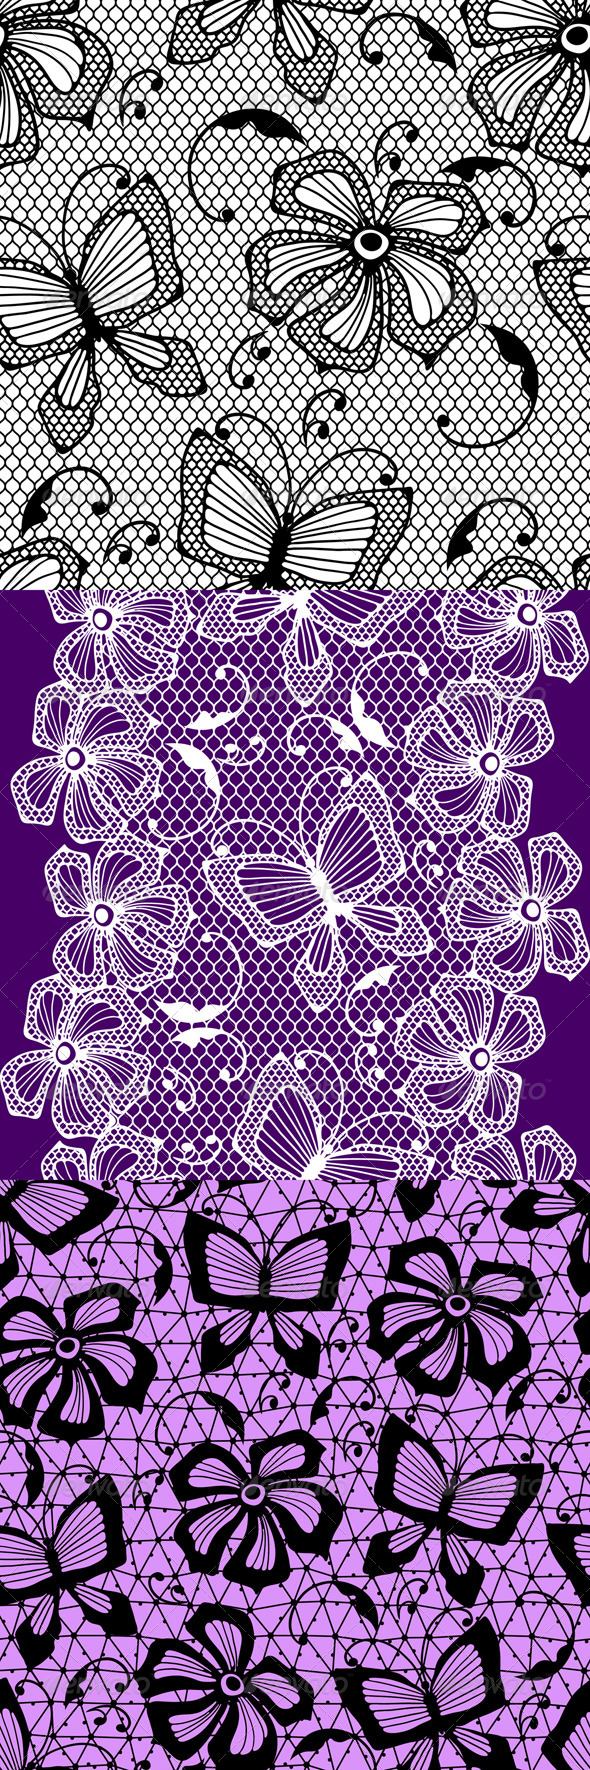 GraphicRiver Seamless Lace Patterns with Butterflies 4509751